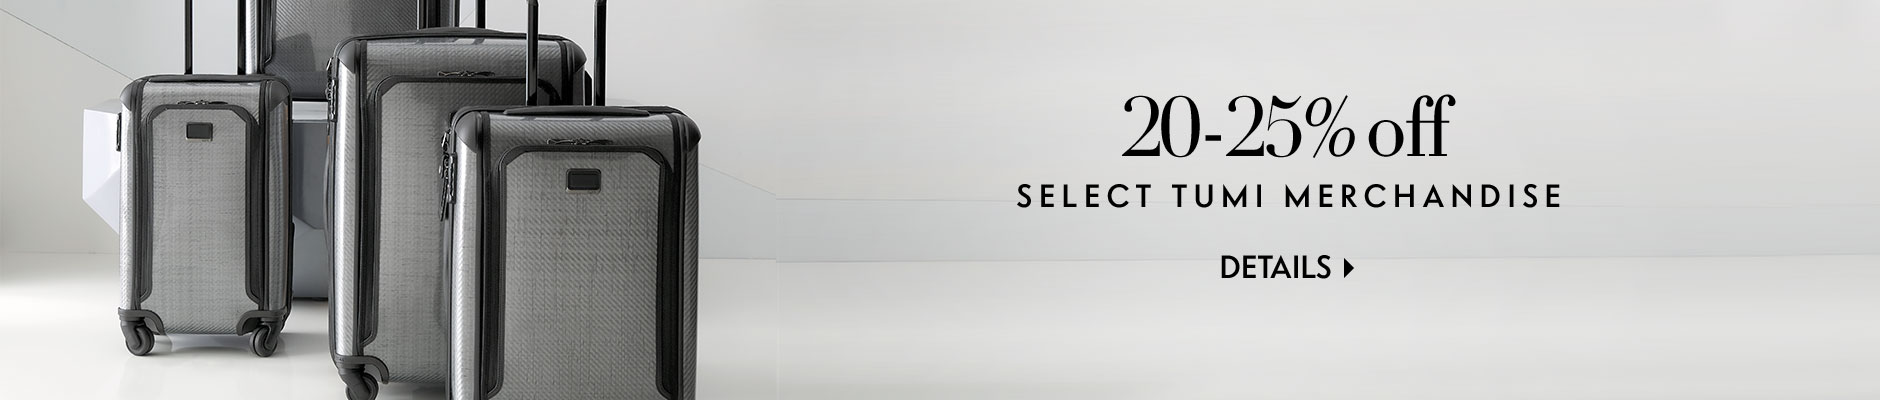 20%-25% off select Tumi merchandise